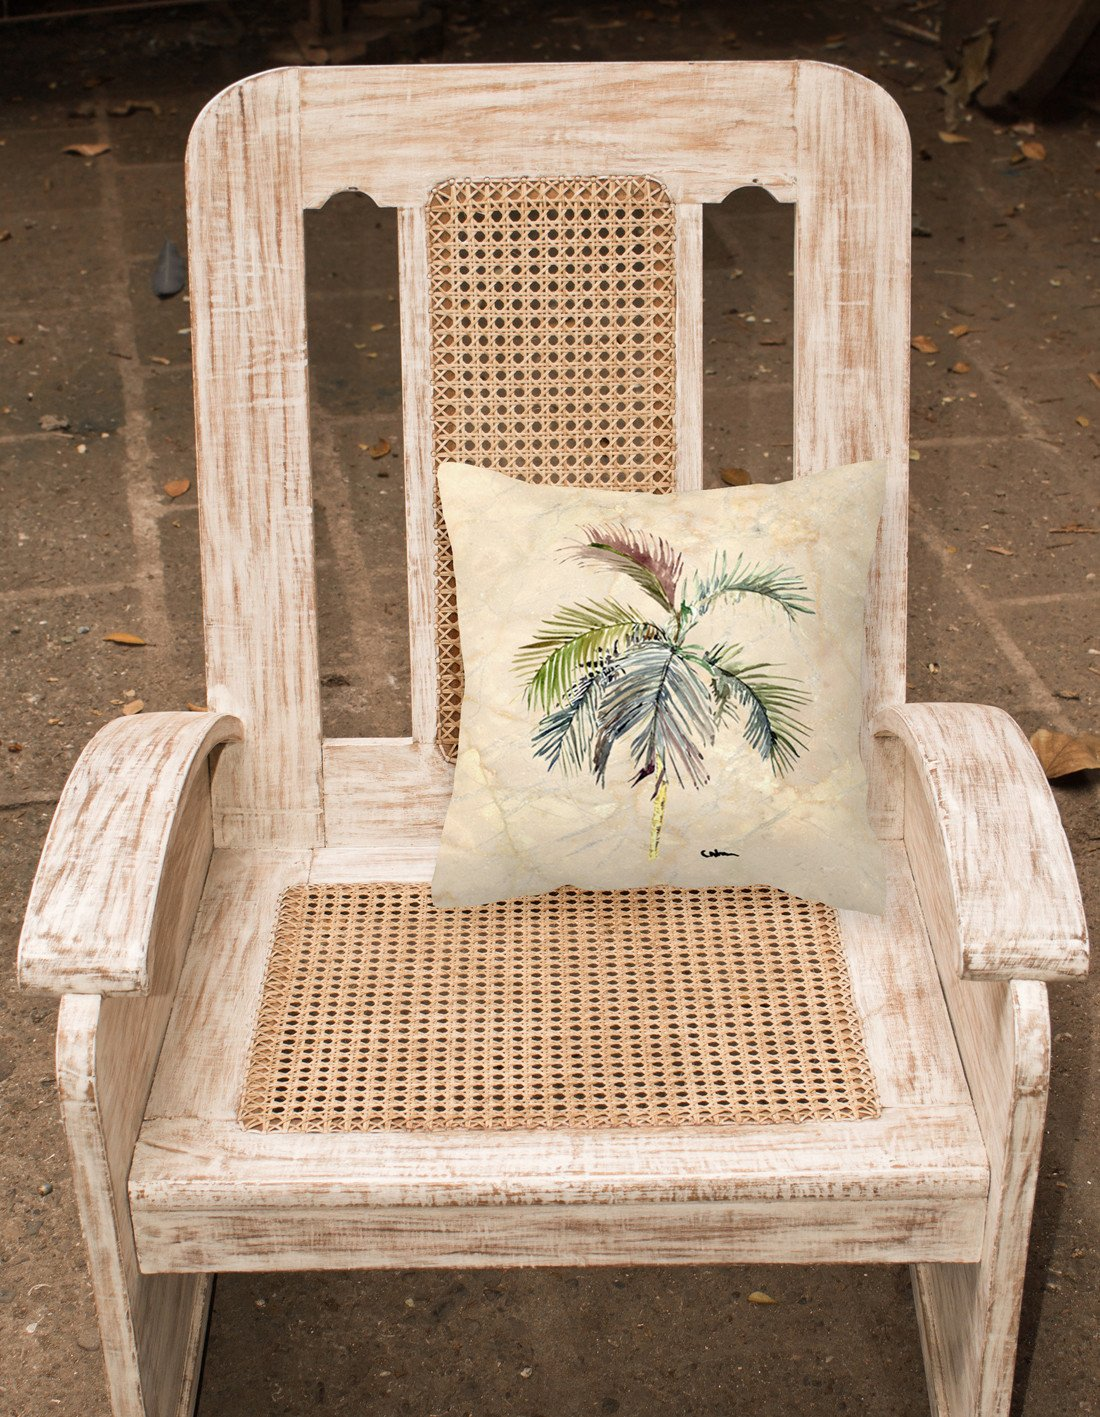 Tree - Palm Tree Decorative   Canvas Fabric Pillow - the-store.com